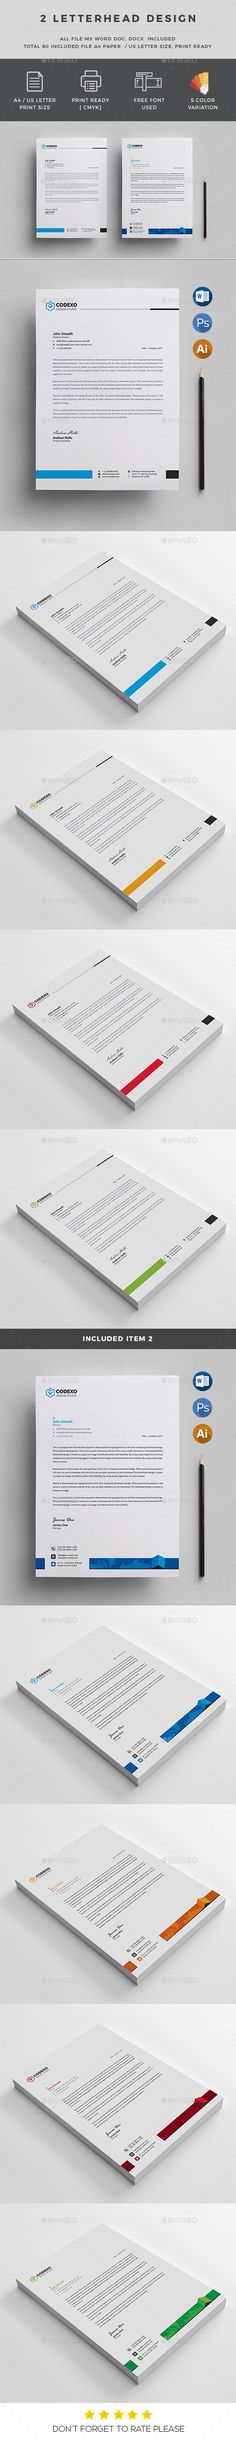 Letterhead Design Template PSD, Vector EPS, AI Illustrator, MS - letterhead samples word